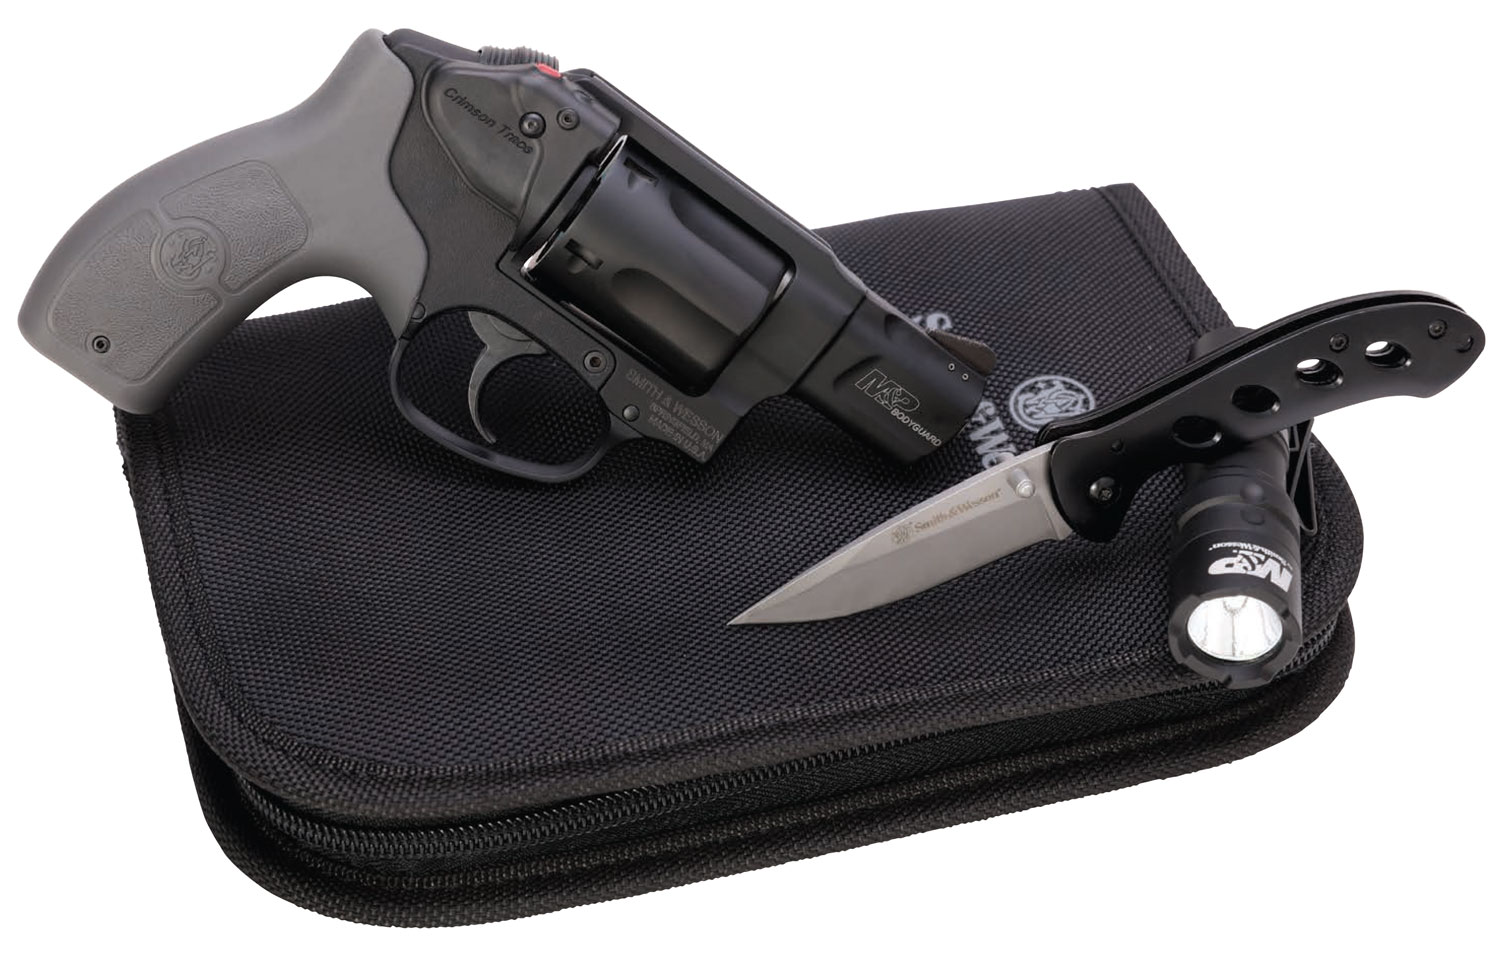 Smith & Wesson 12934 M&P Bodyguard 38 *MA Compliant* Everyday Carry Kit 38 Special +P 1.9